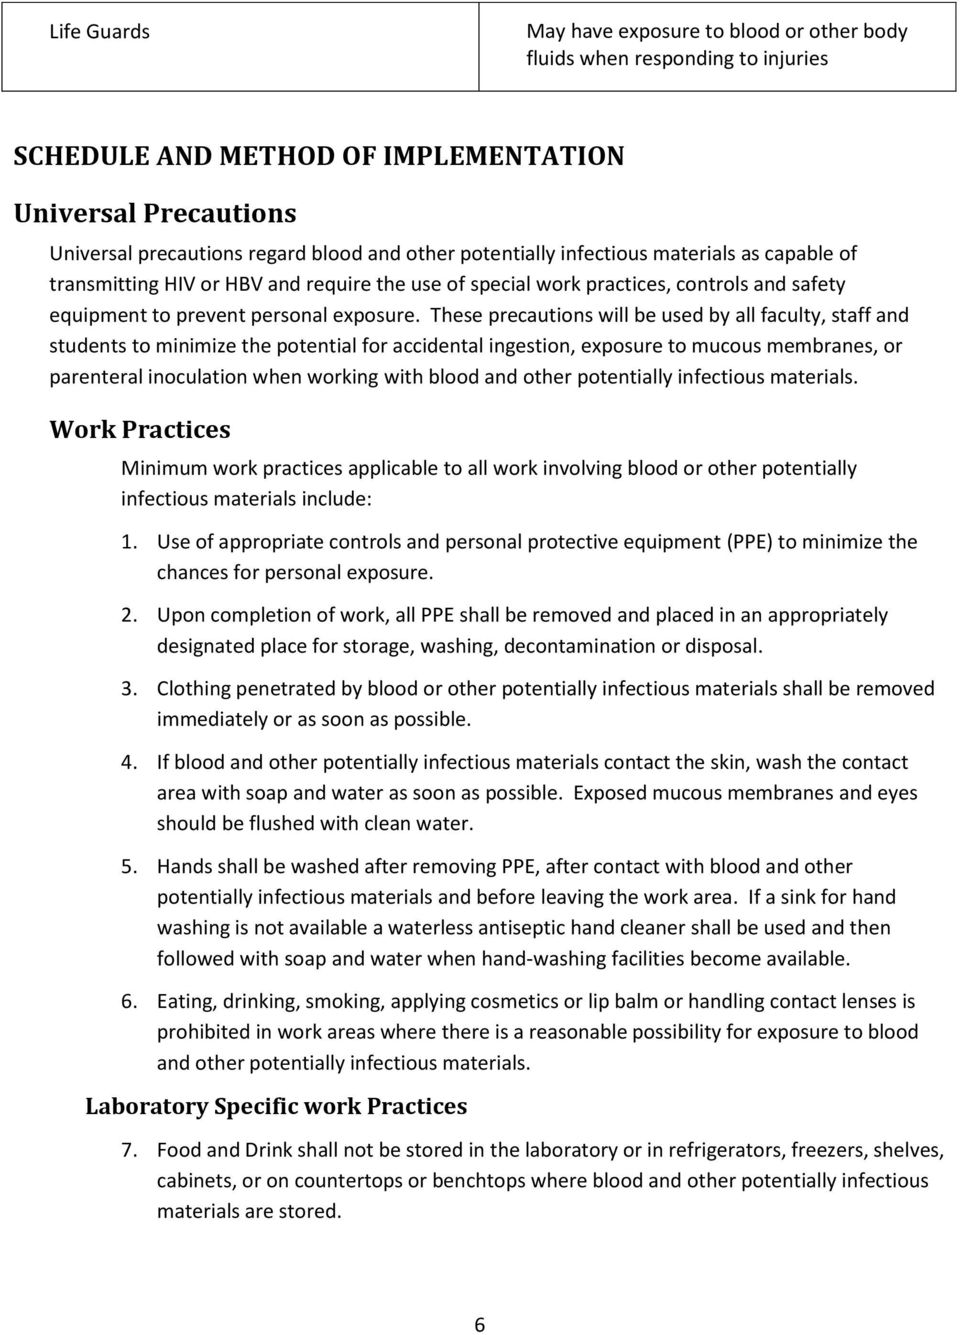 These precautions will be used by all faculty, staff and students to minimize the potential for accidental ingestion, exposure to mucous membranes, or parenteral inoculation when working with blood